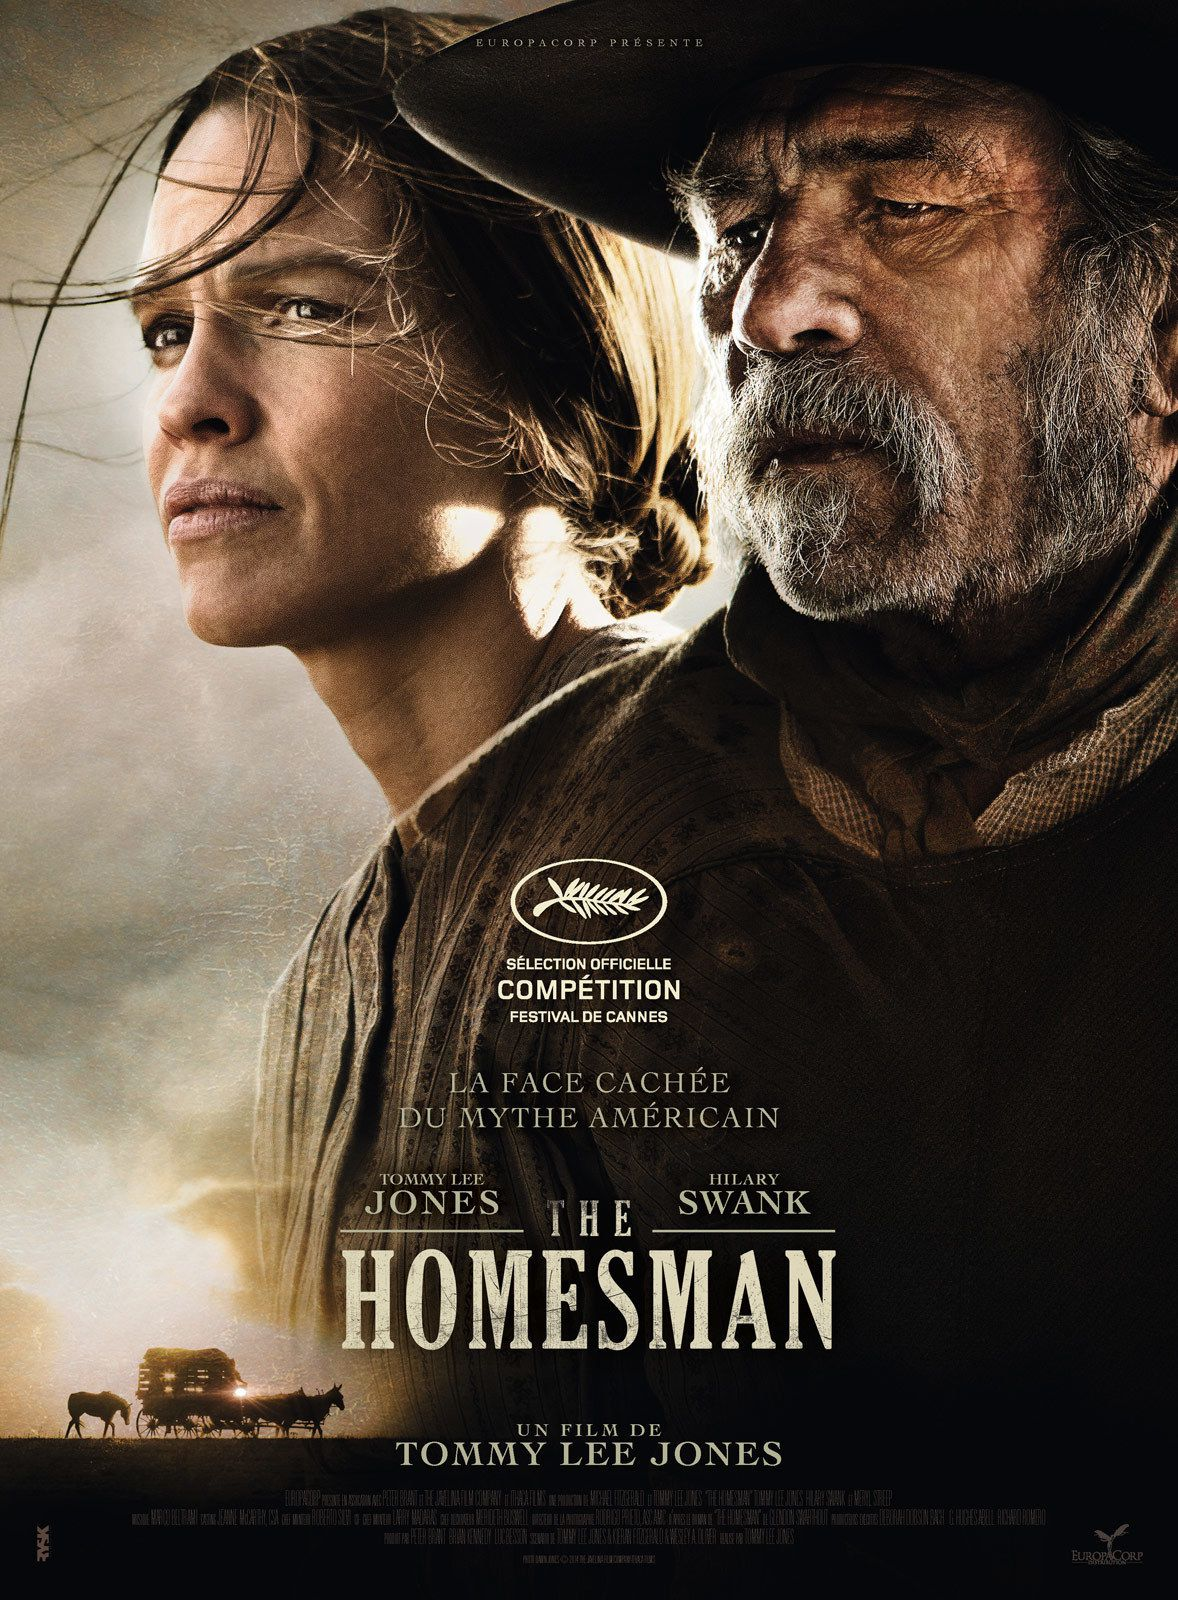 The Homesman - Film (2014)